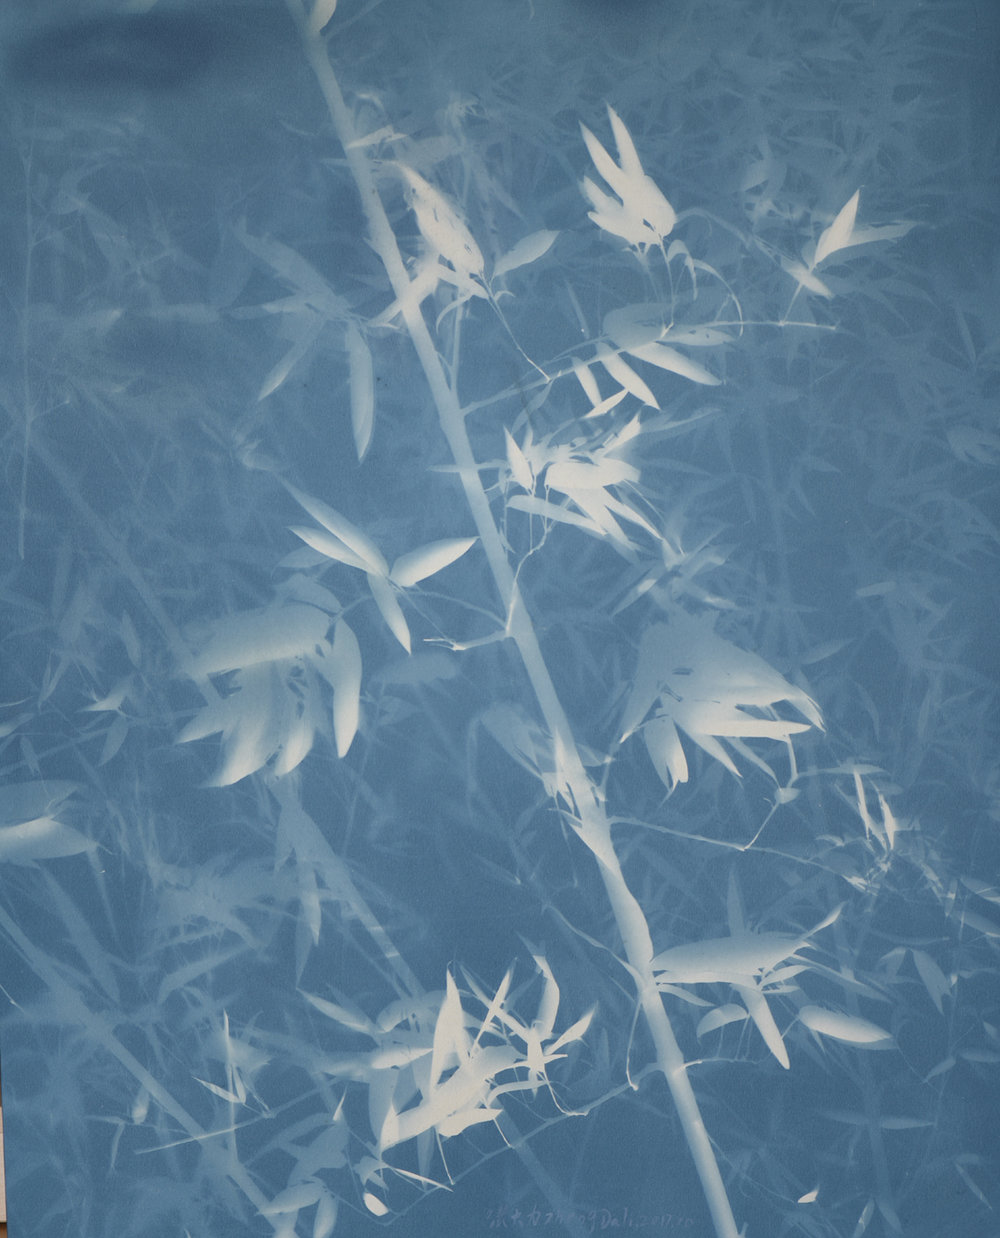 Bamboo No. 11, Cyanotype on canvas, 108 x 88 cm, 2017 | Photo Copyright Artist Zhang Dali and Courtesy of Pékin Fine Arts